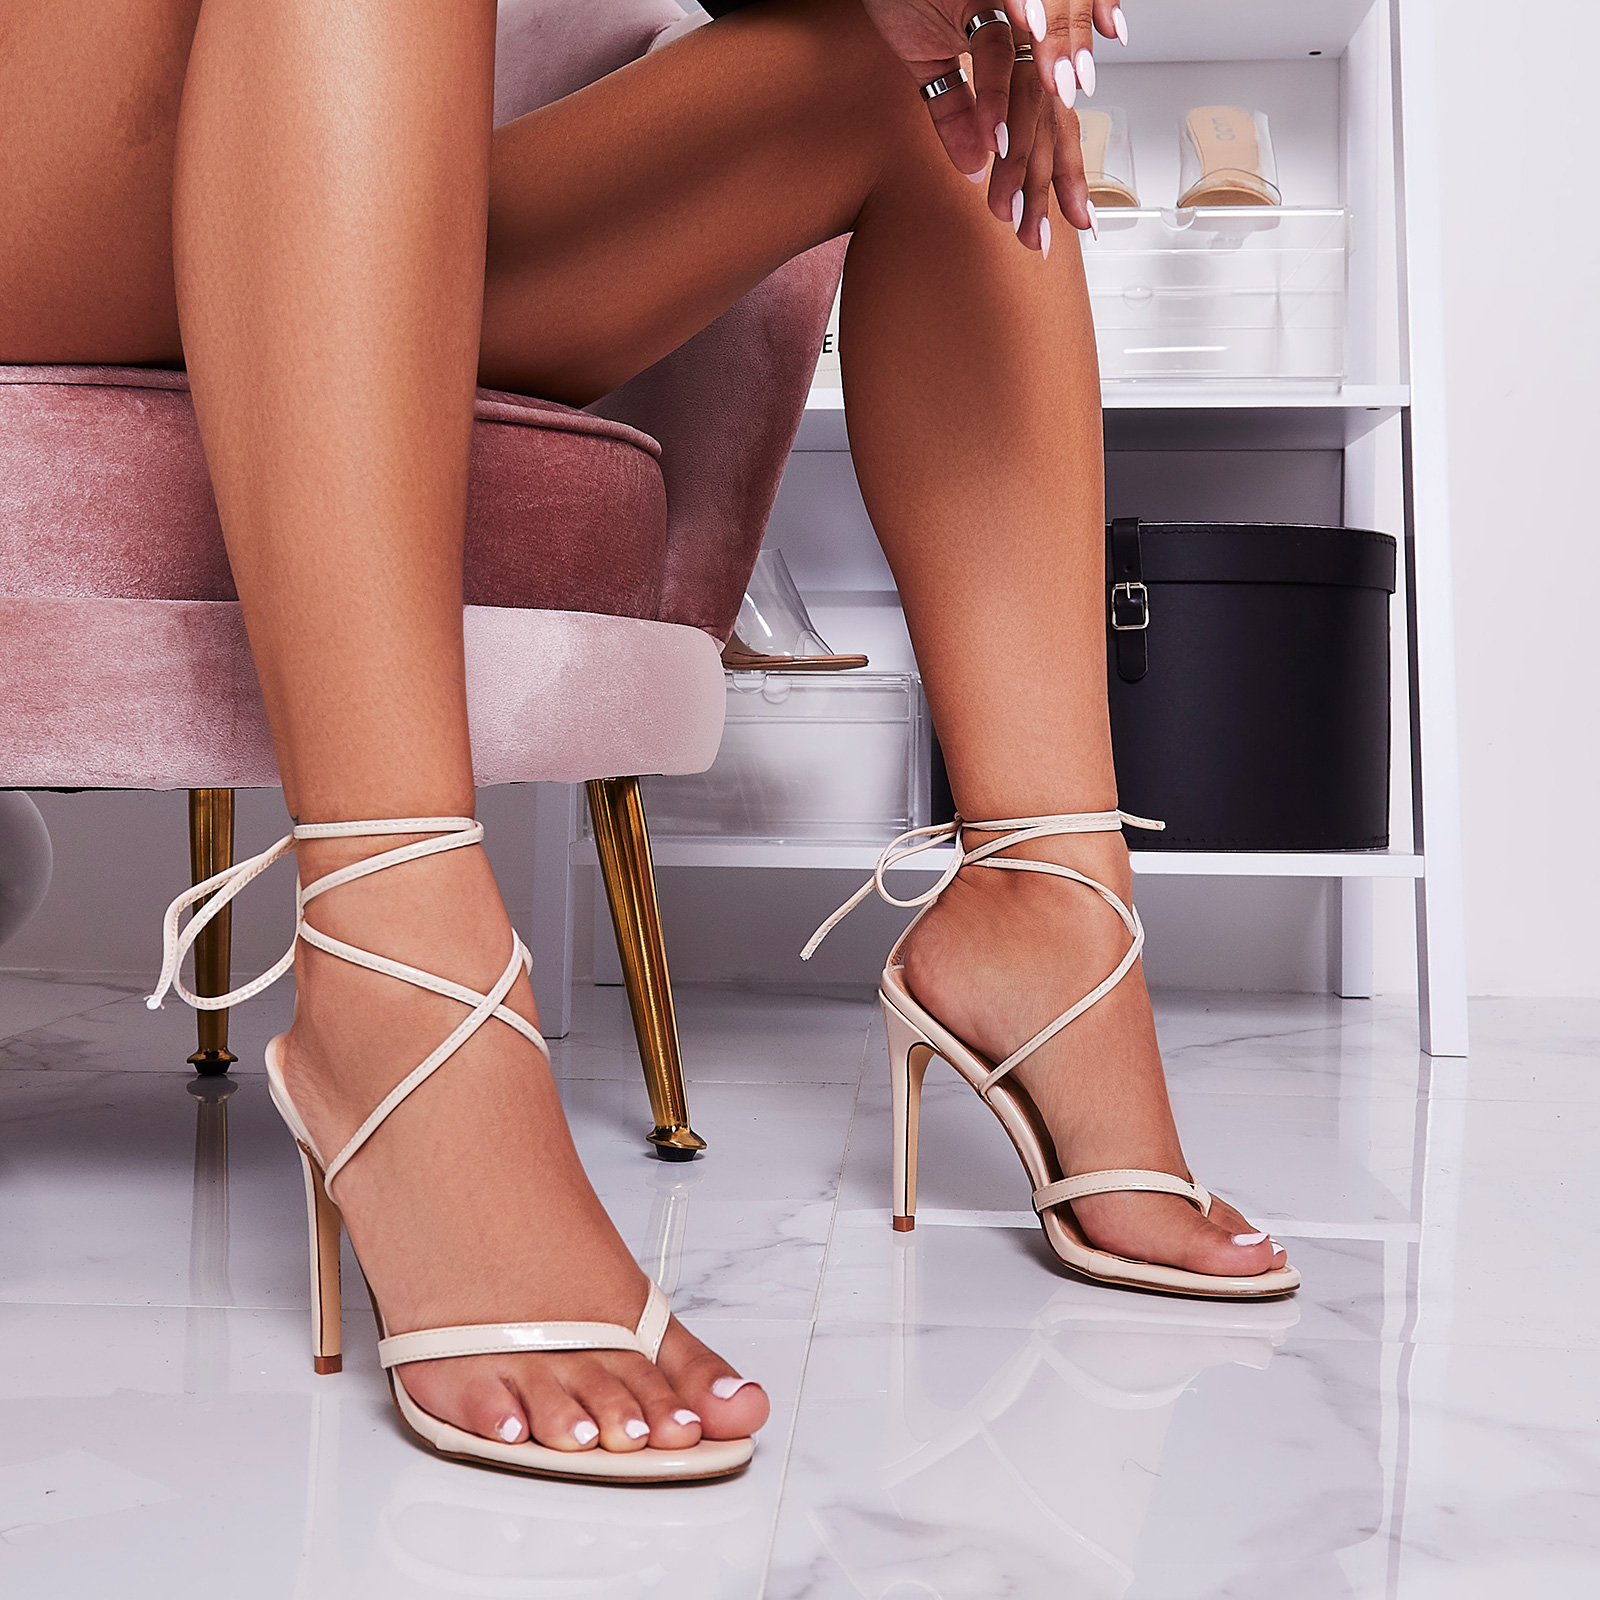 Malina Lace Up Heel In Nude Patent